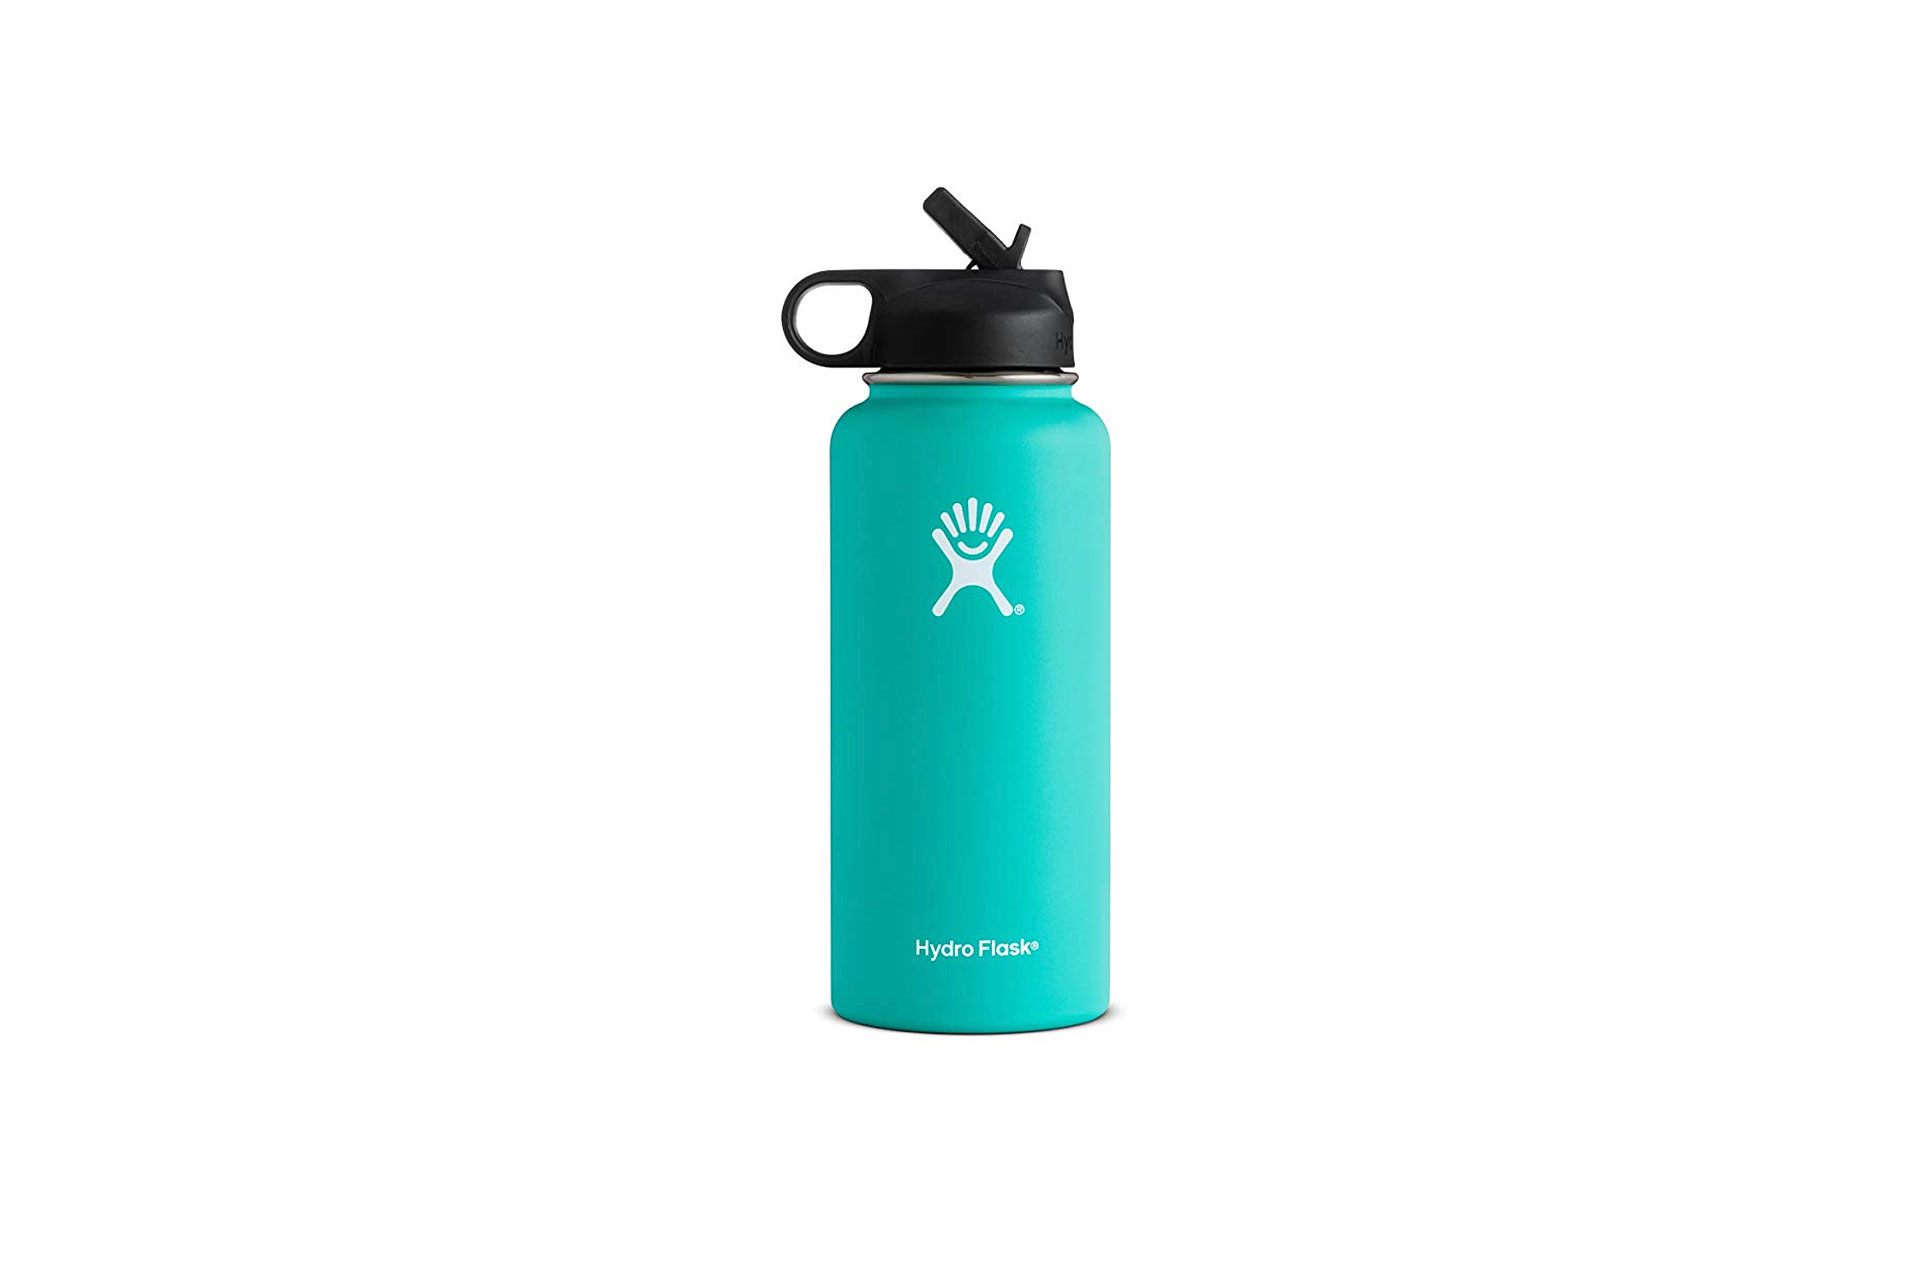 Hydro Flask Water Bottle in Teal; Courtesy of Amazon